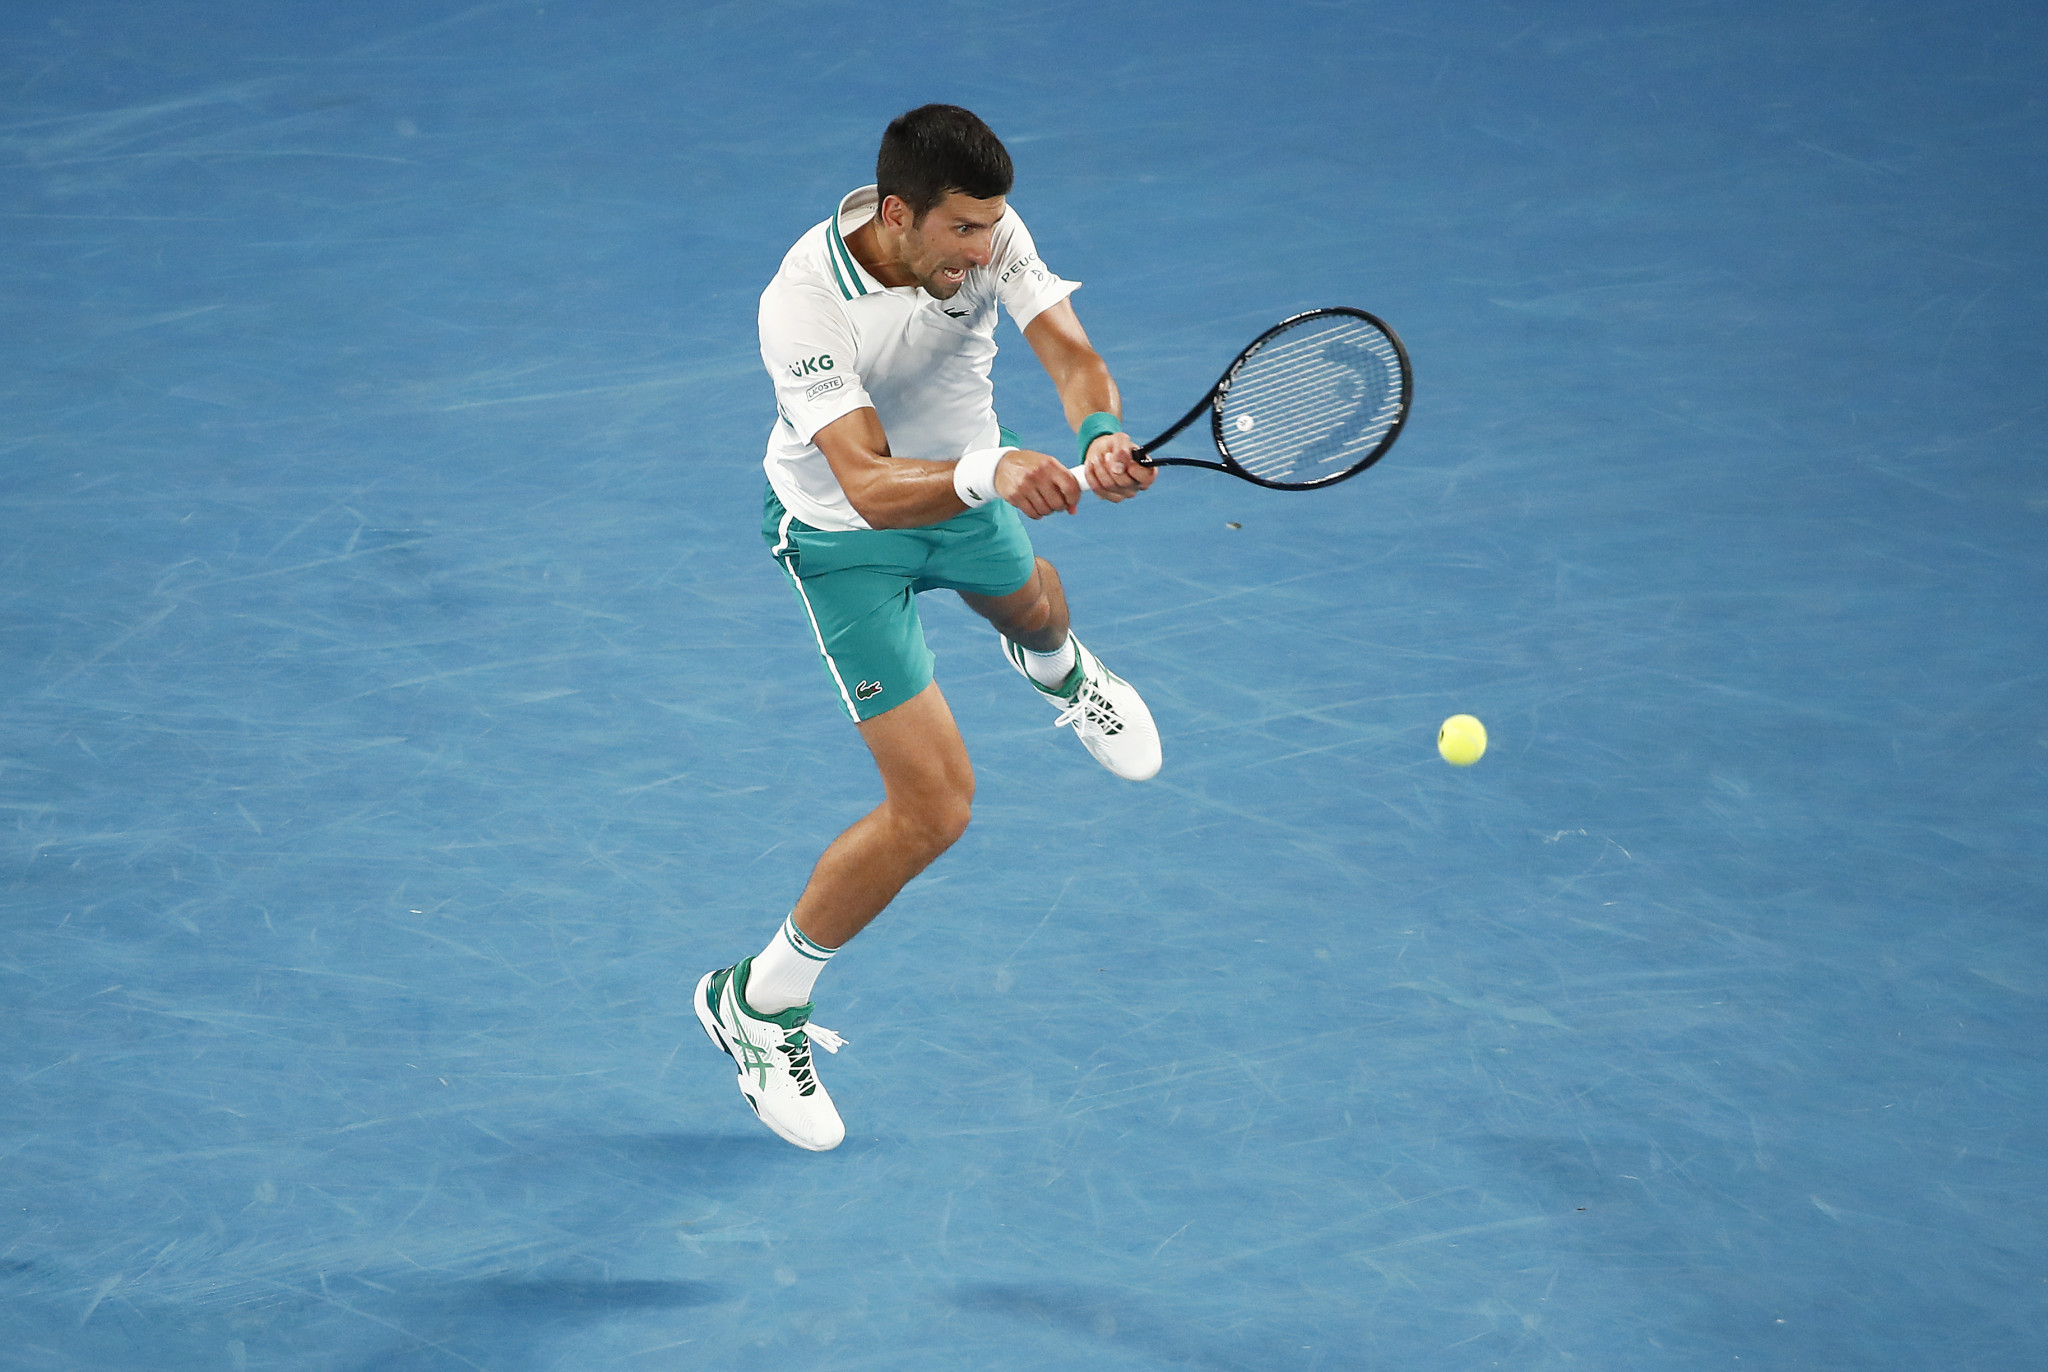 Novak Djokovic earned a straight sets win to reach the men's singles final ©Getty Images